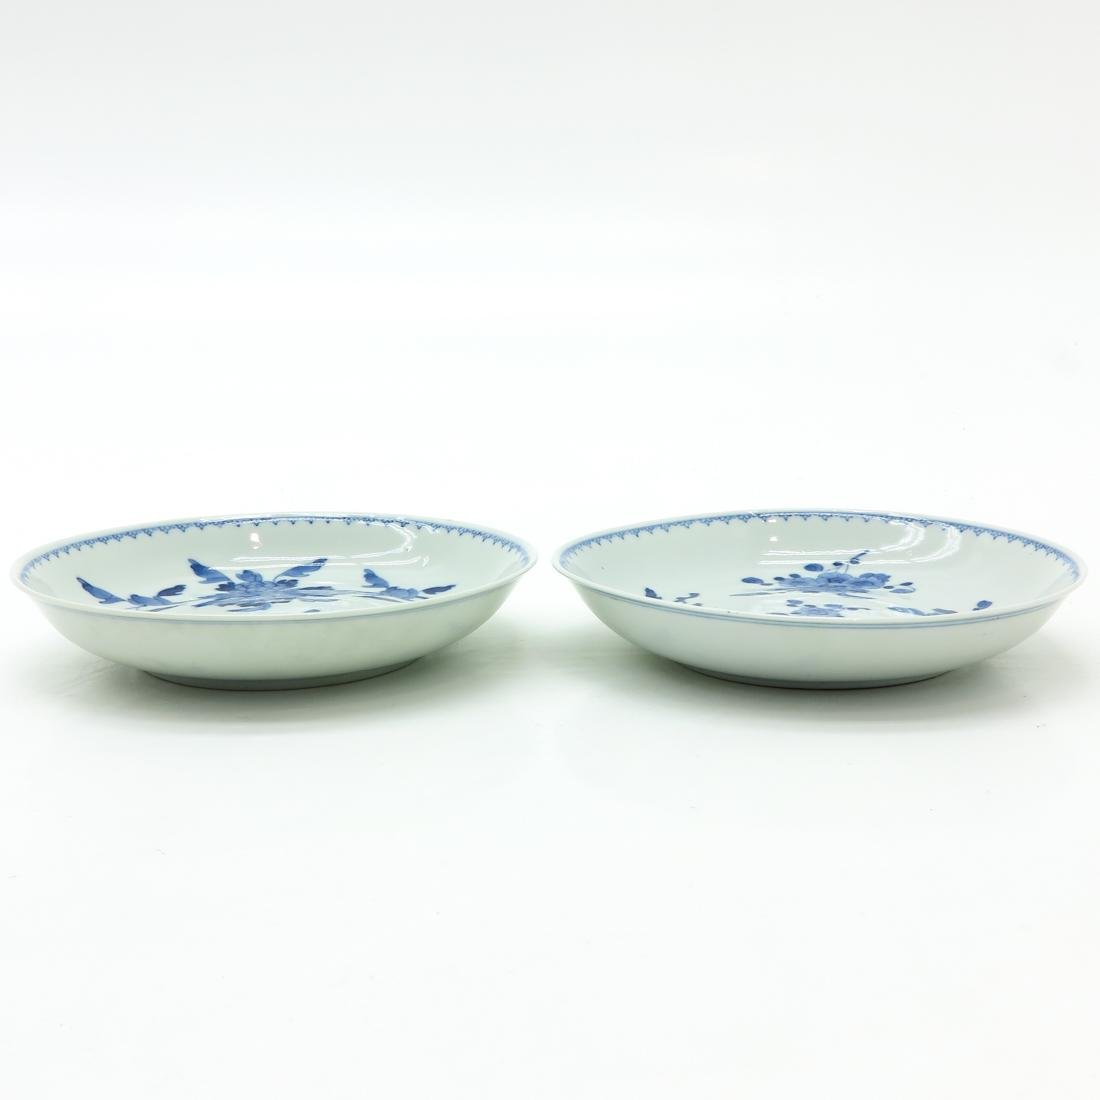 Lot of 2 Plates - 3